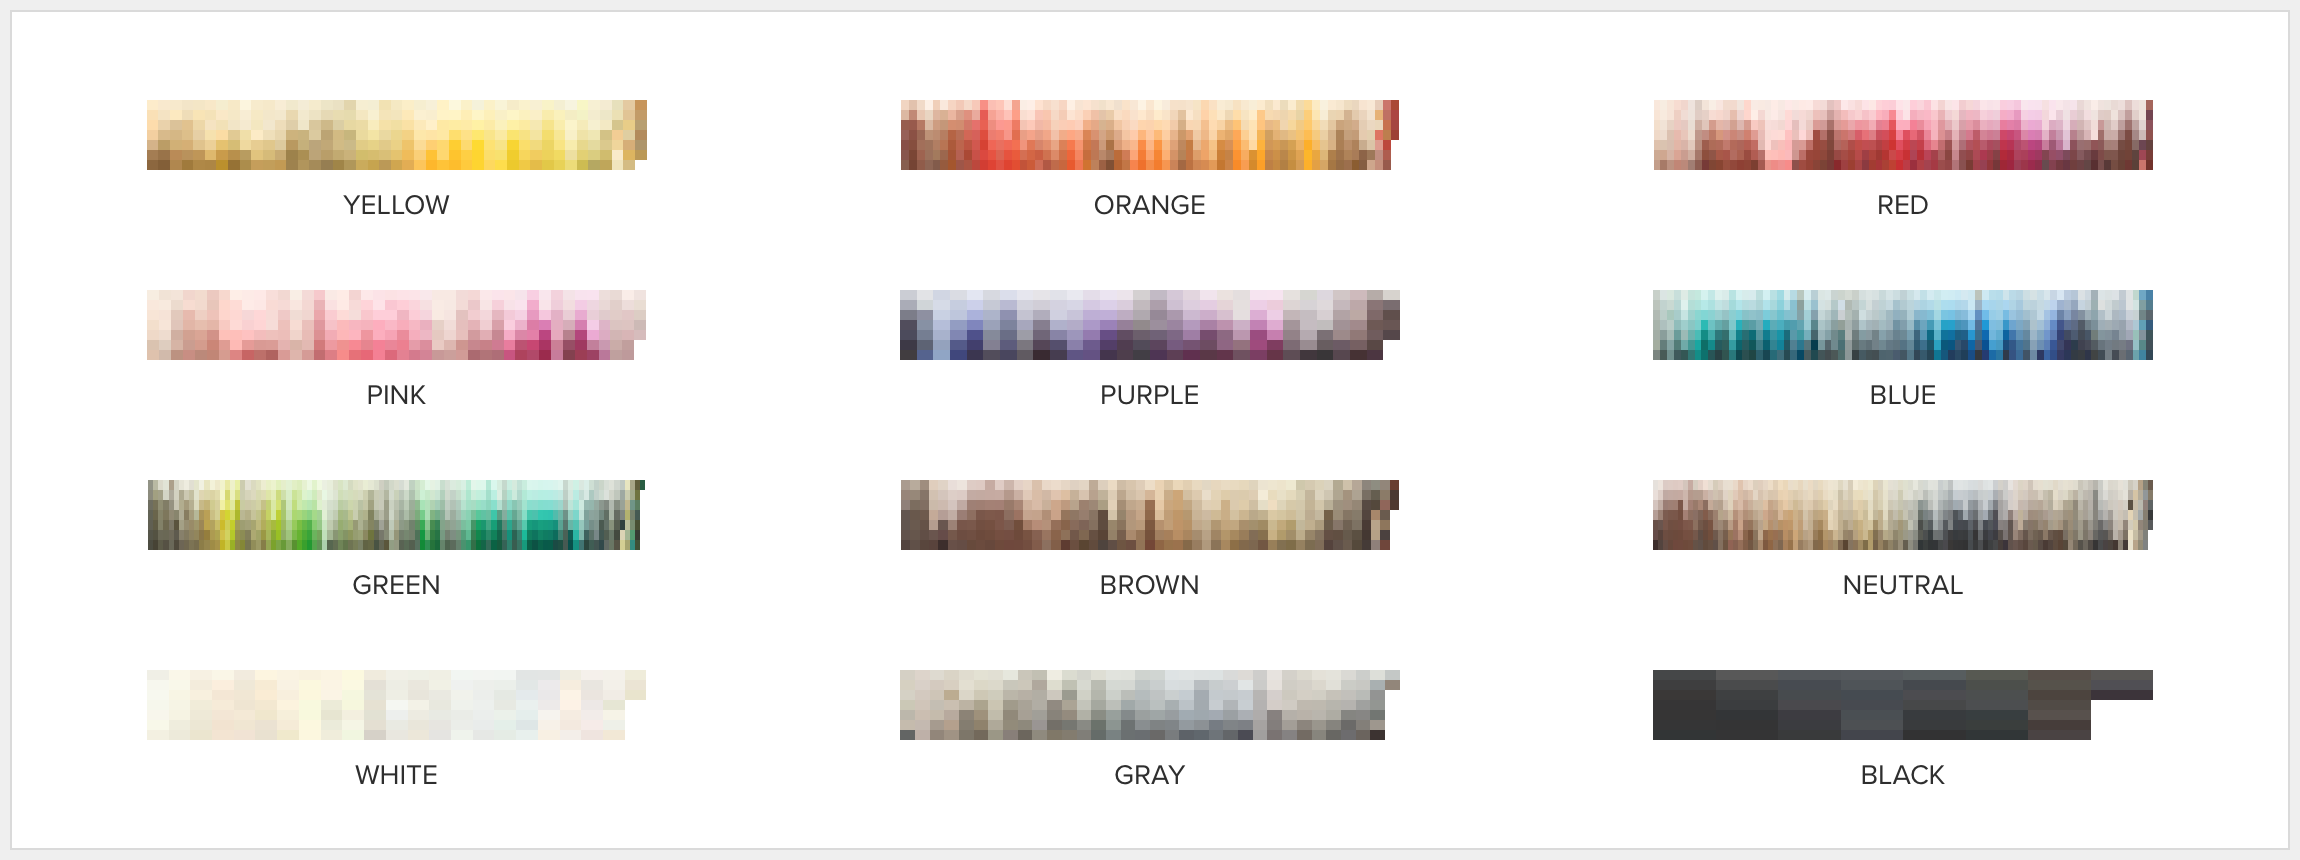 Click on the image  to be directed to the Benjamin Moore Color Gallery and choose your color!